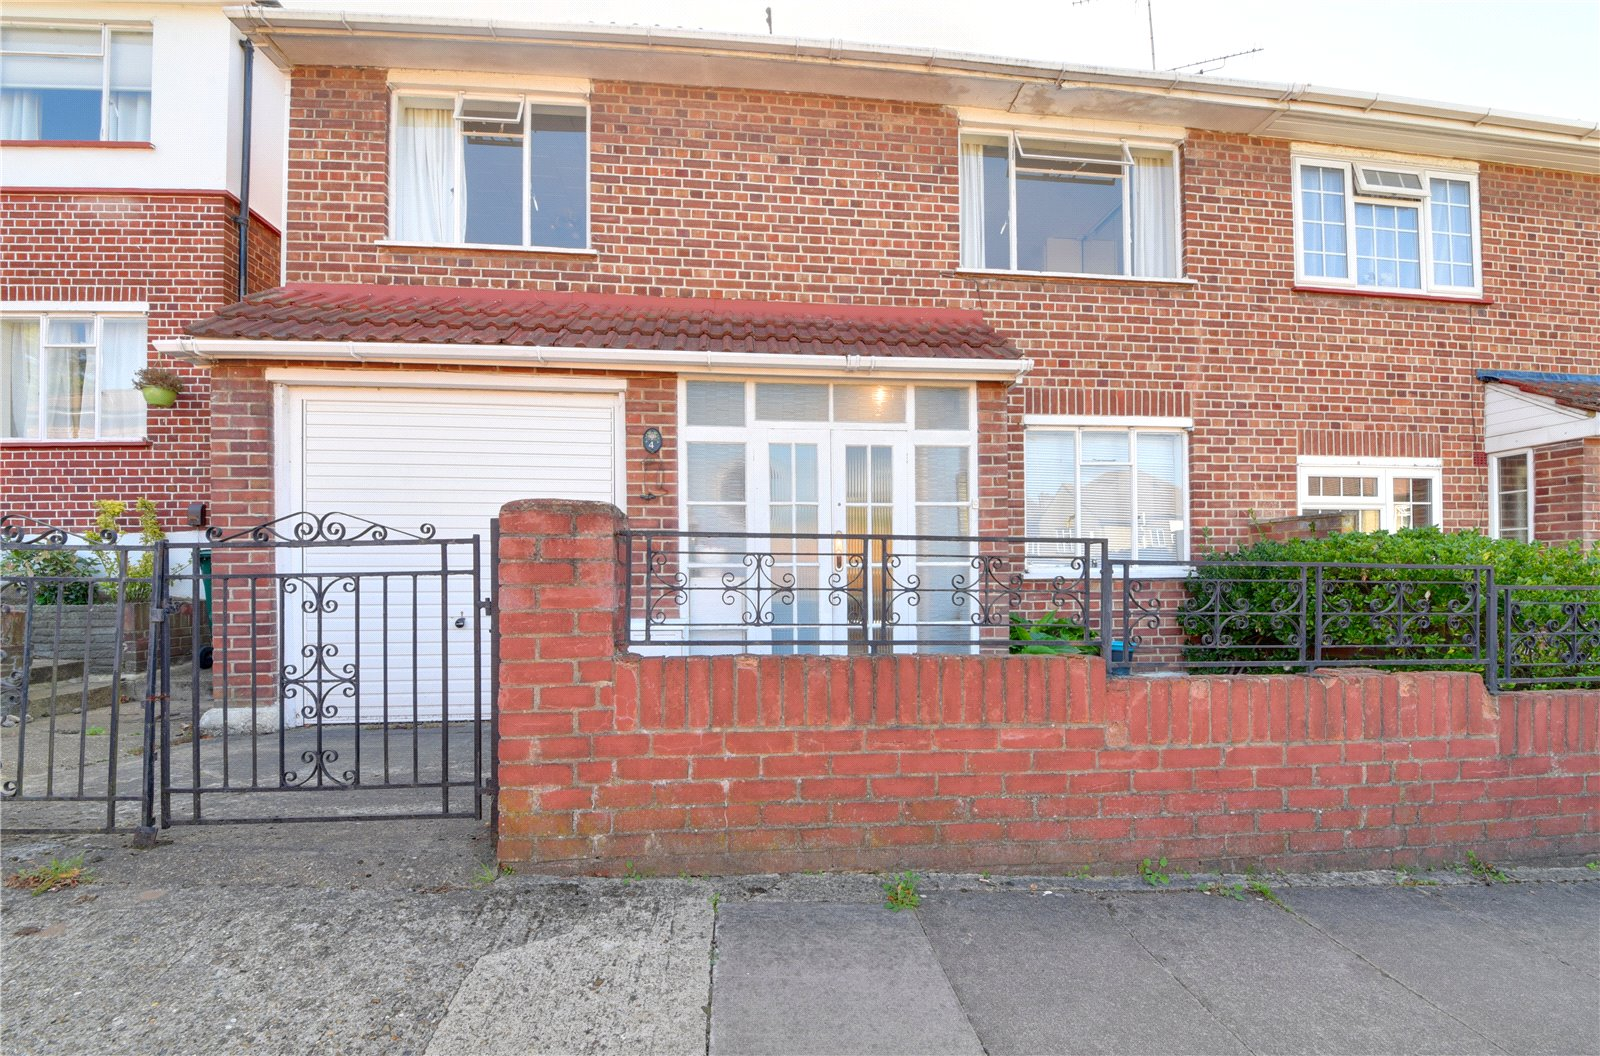 3 bed house for sale in West Finchley, N3 1PB  - Property Image 7